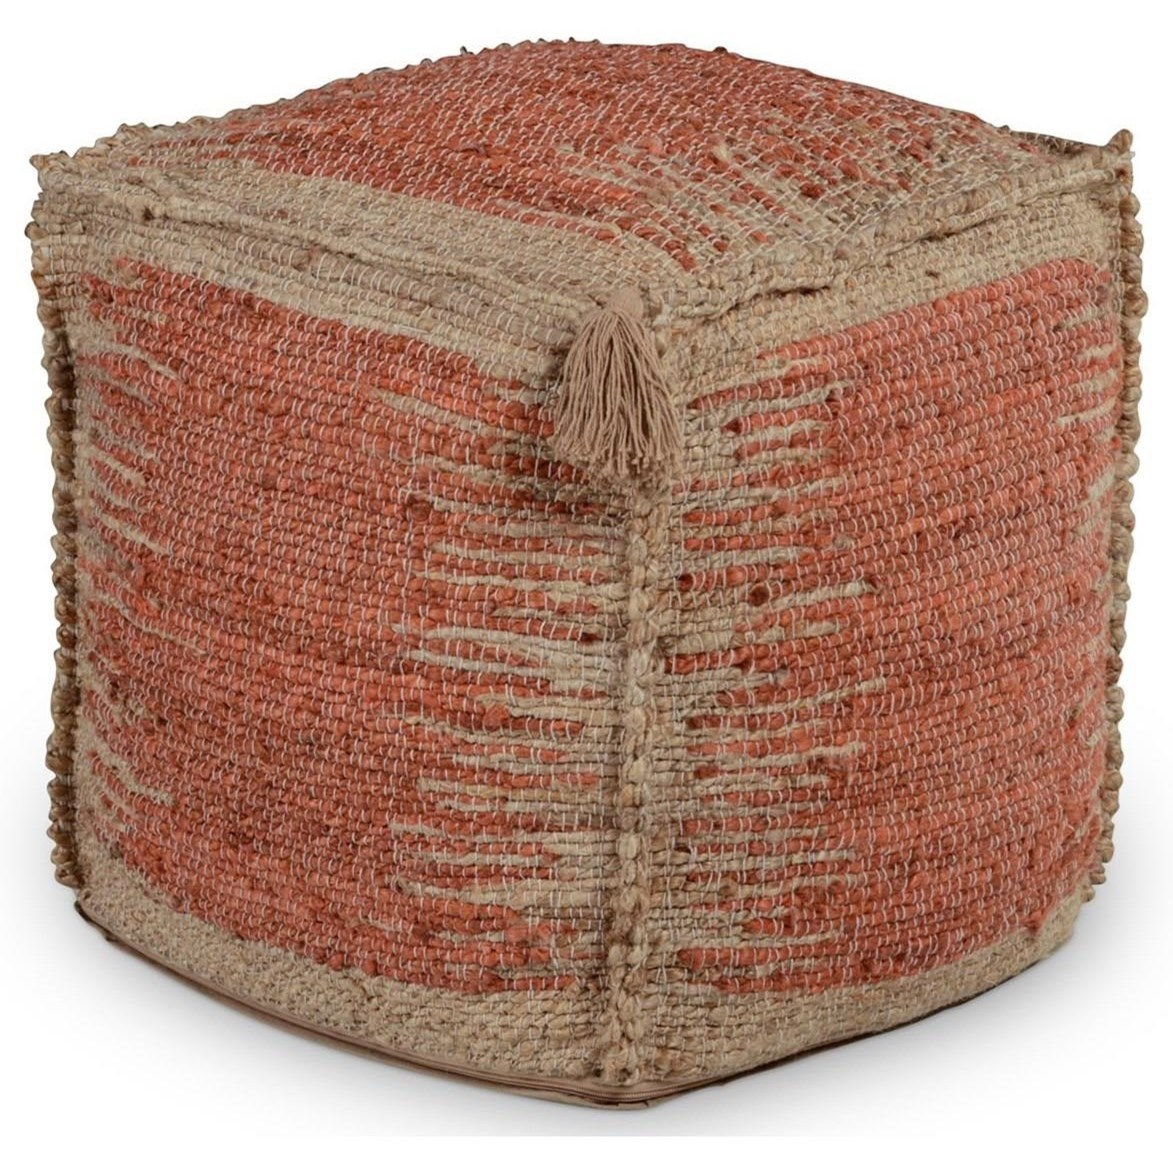 Jafar Handwoven Pouf by Steve Silver at Northeast Factory Direct